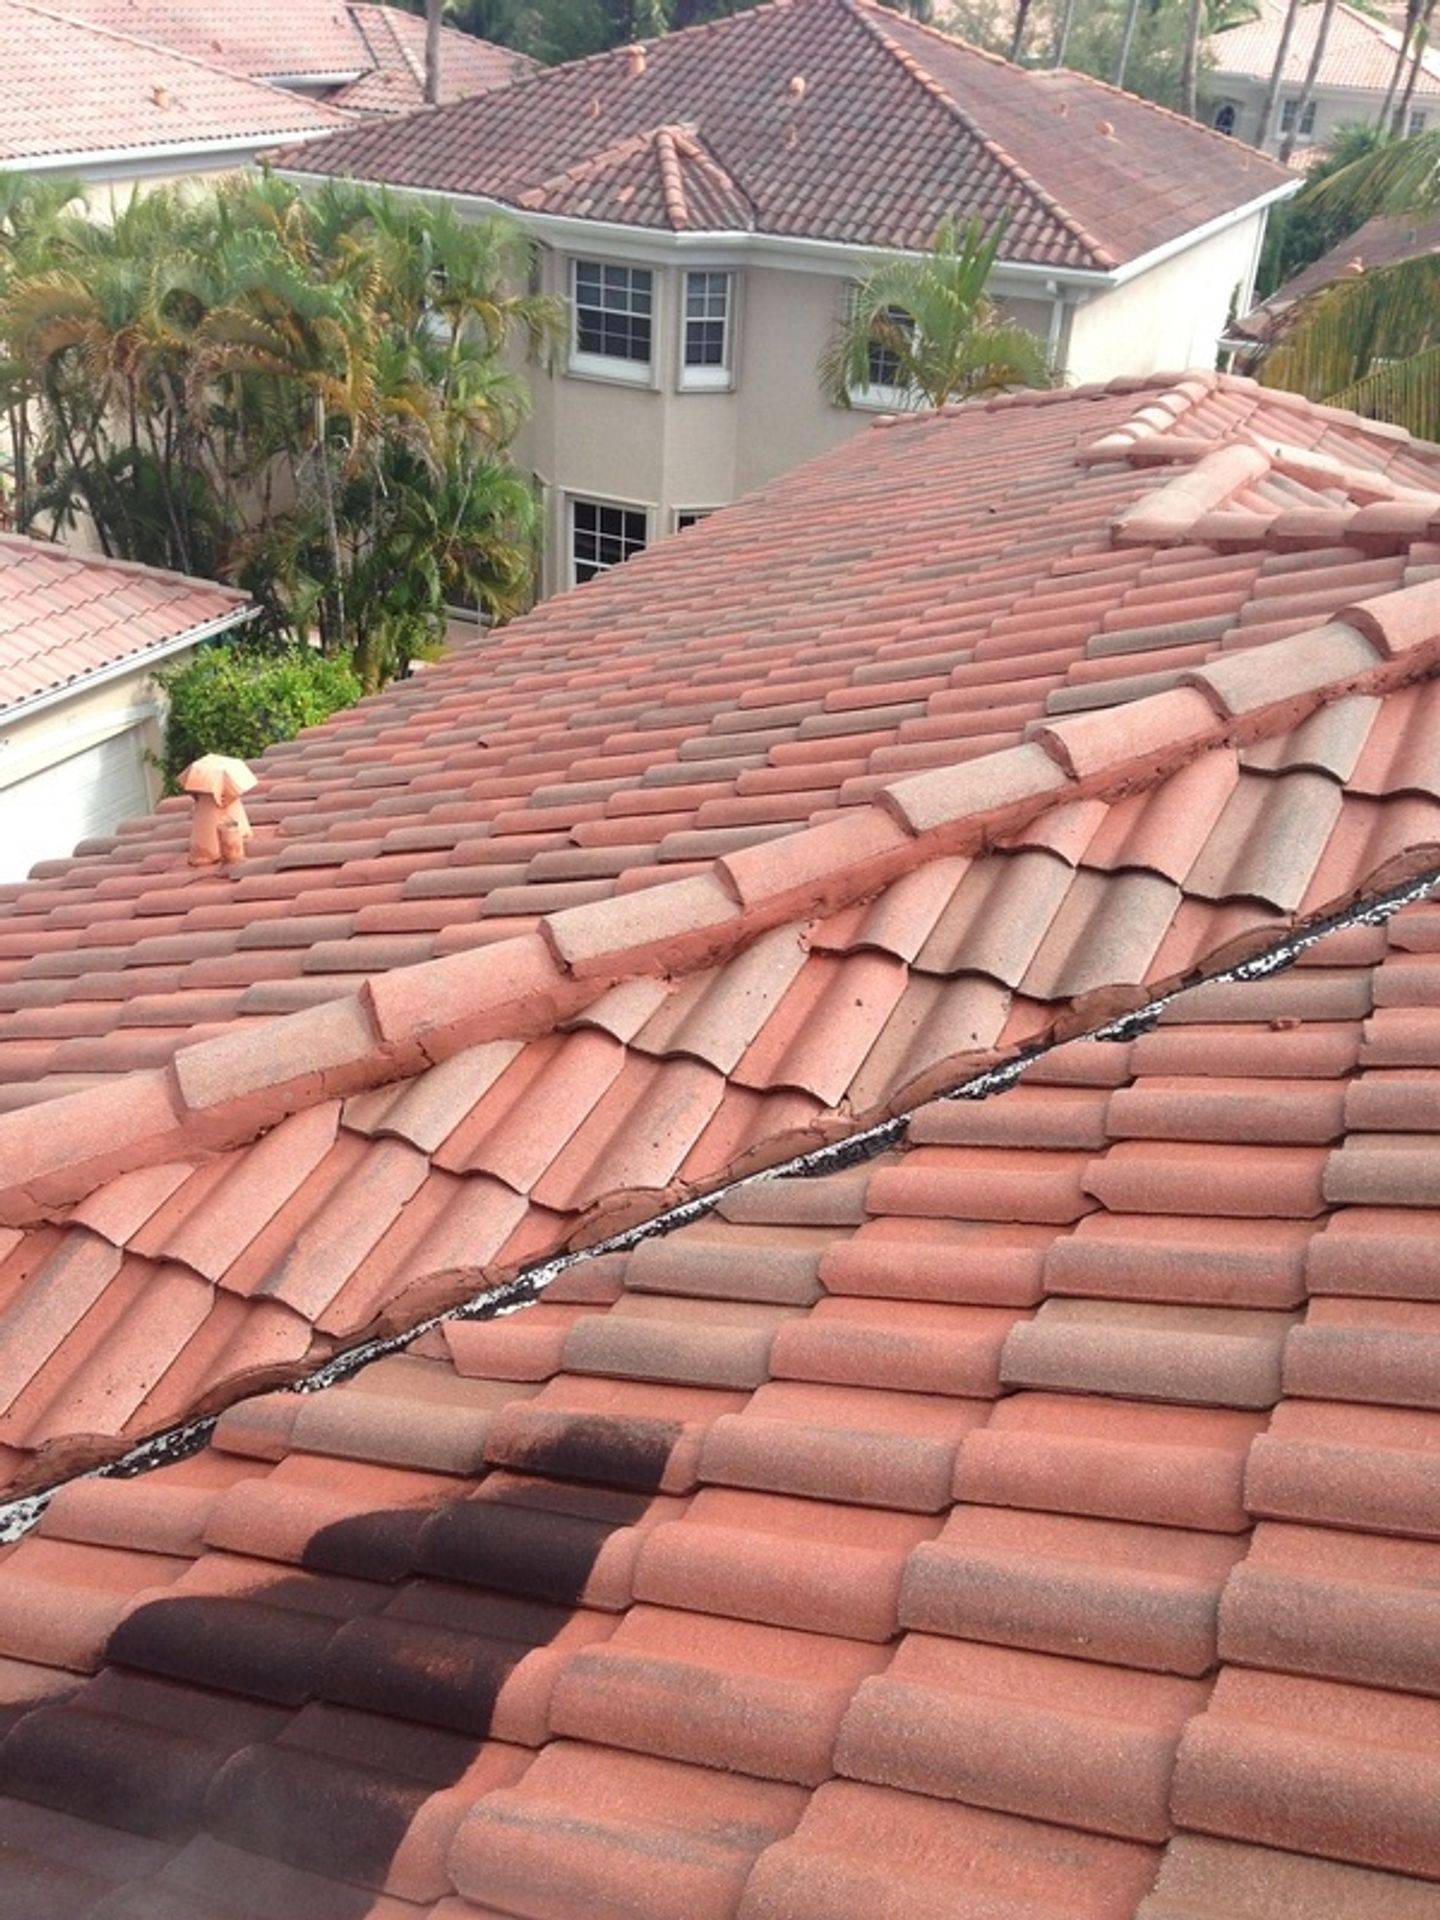 AR&D Inc. Roof Cleaning Services, Miramar FL.